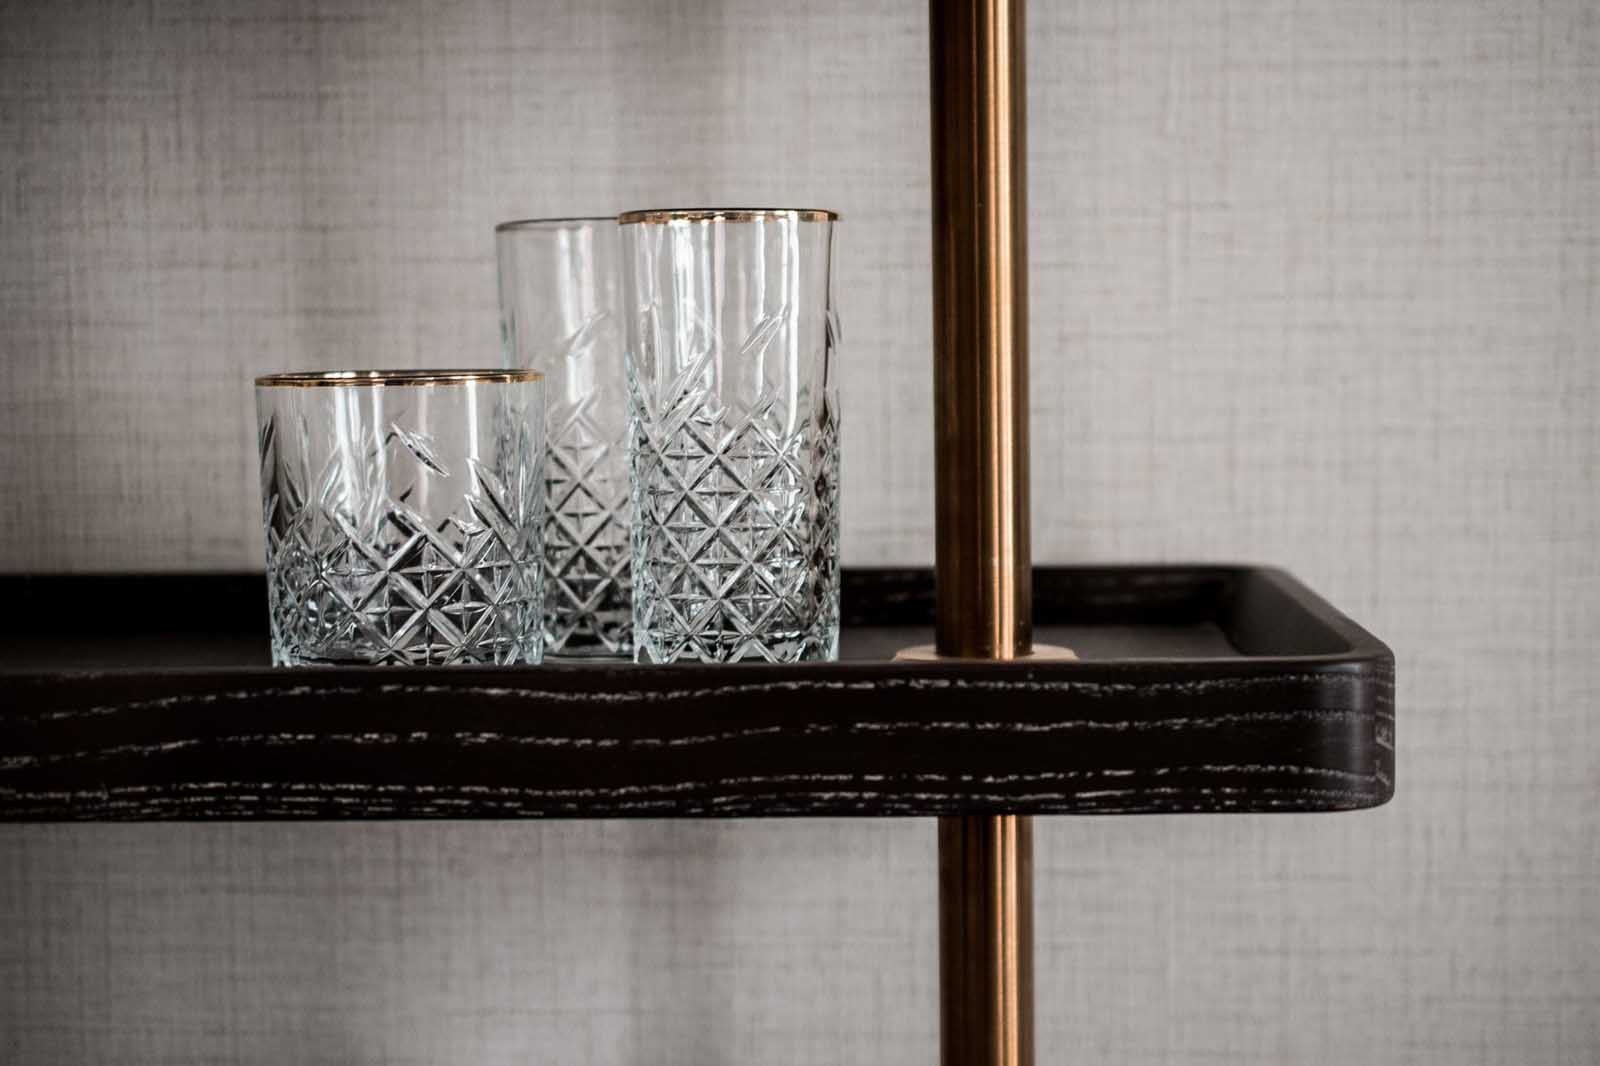 Three crystal glasses on a desk